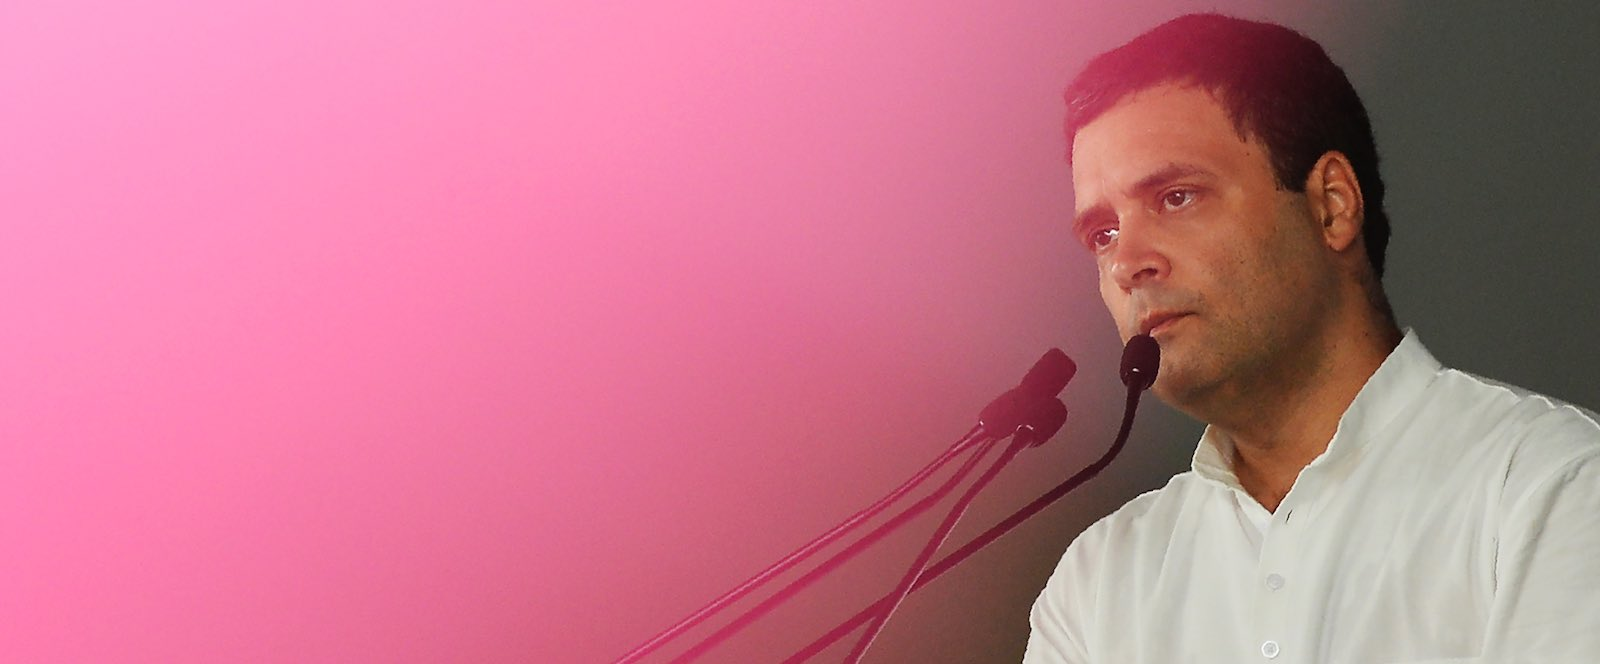 Rahul Gandhi is hoping to restore the Congress Party and defeat Narendra Modi (Photo: Sajjad Hussain via Getty)